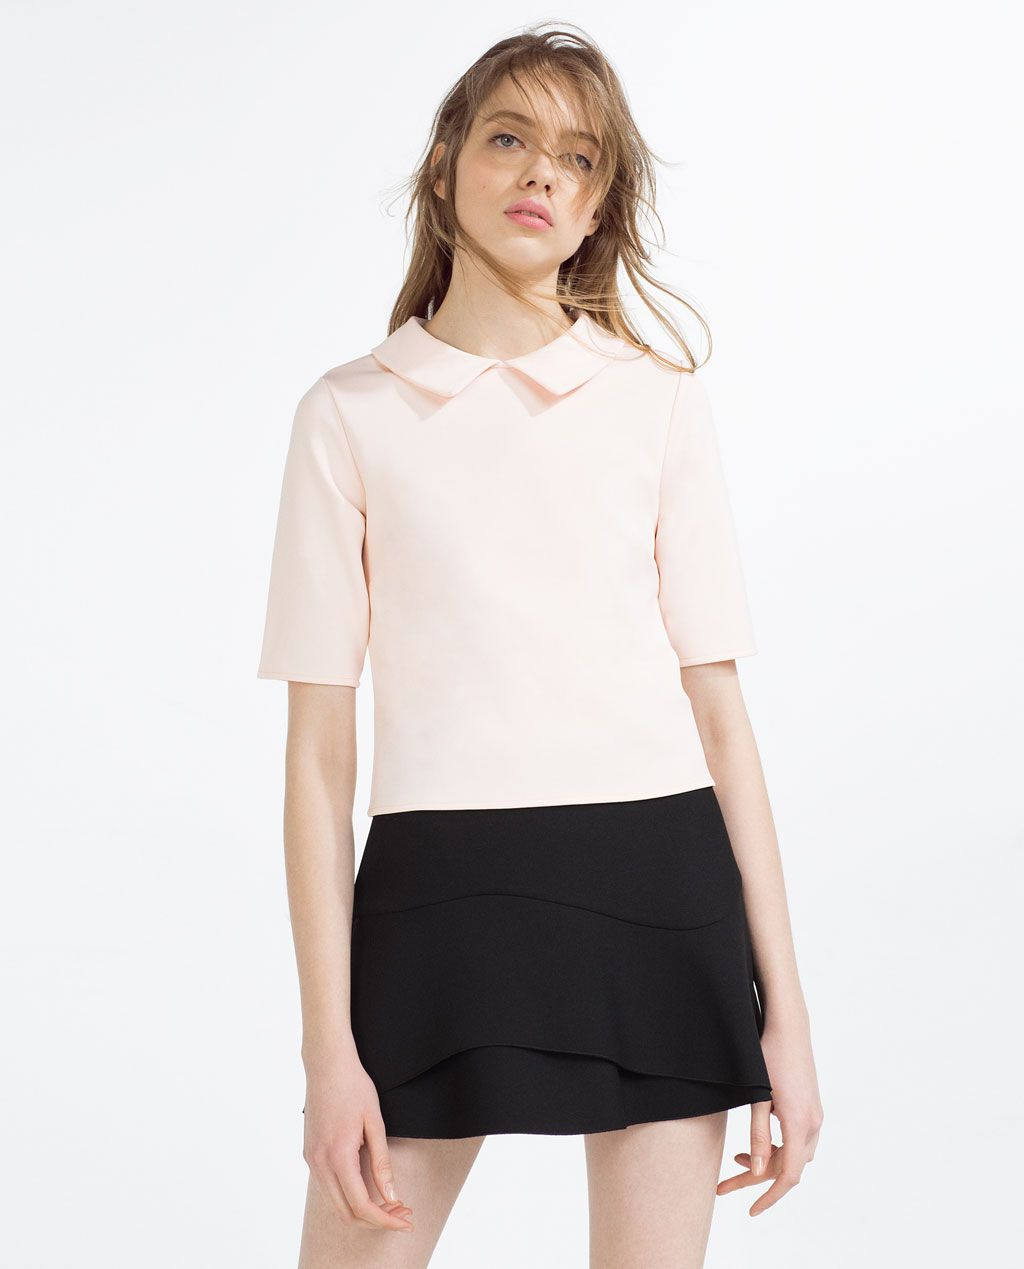 aa01f659 TOP WITH PETER PAN COLLAR-View All-T-SHIRTS-WOMAN | ZARA United States